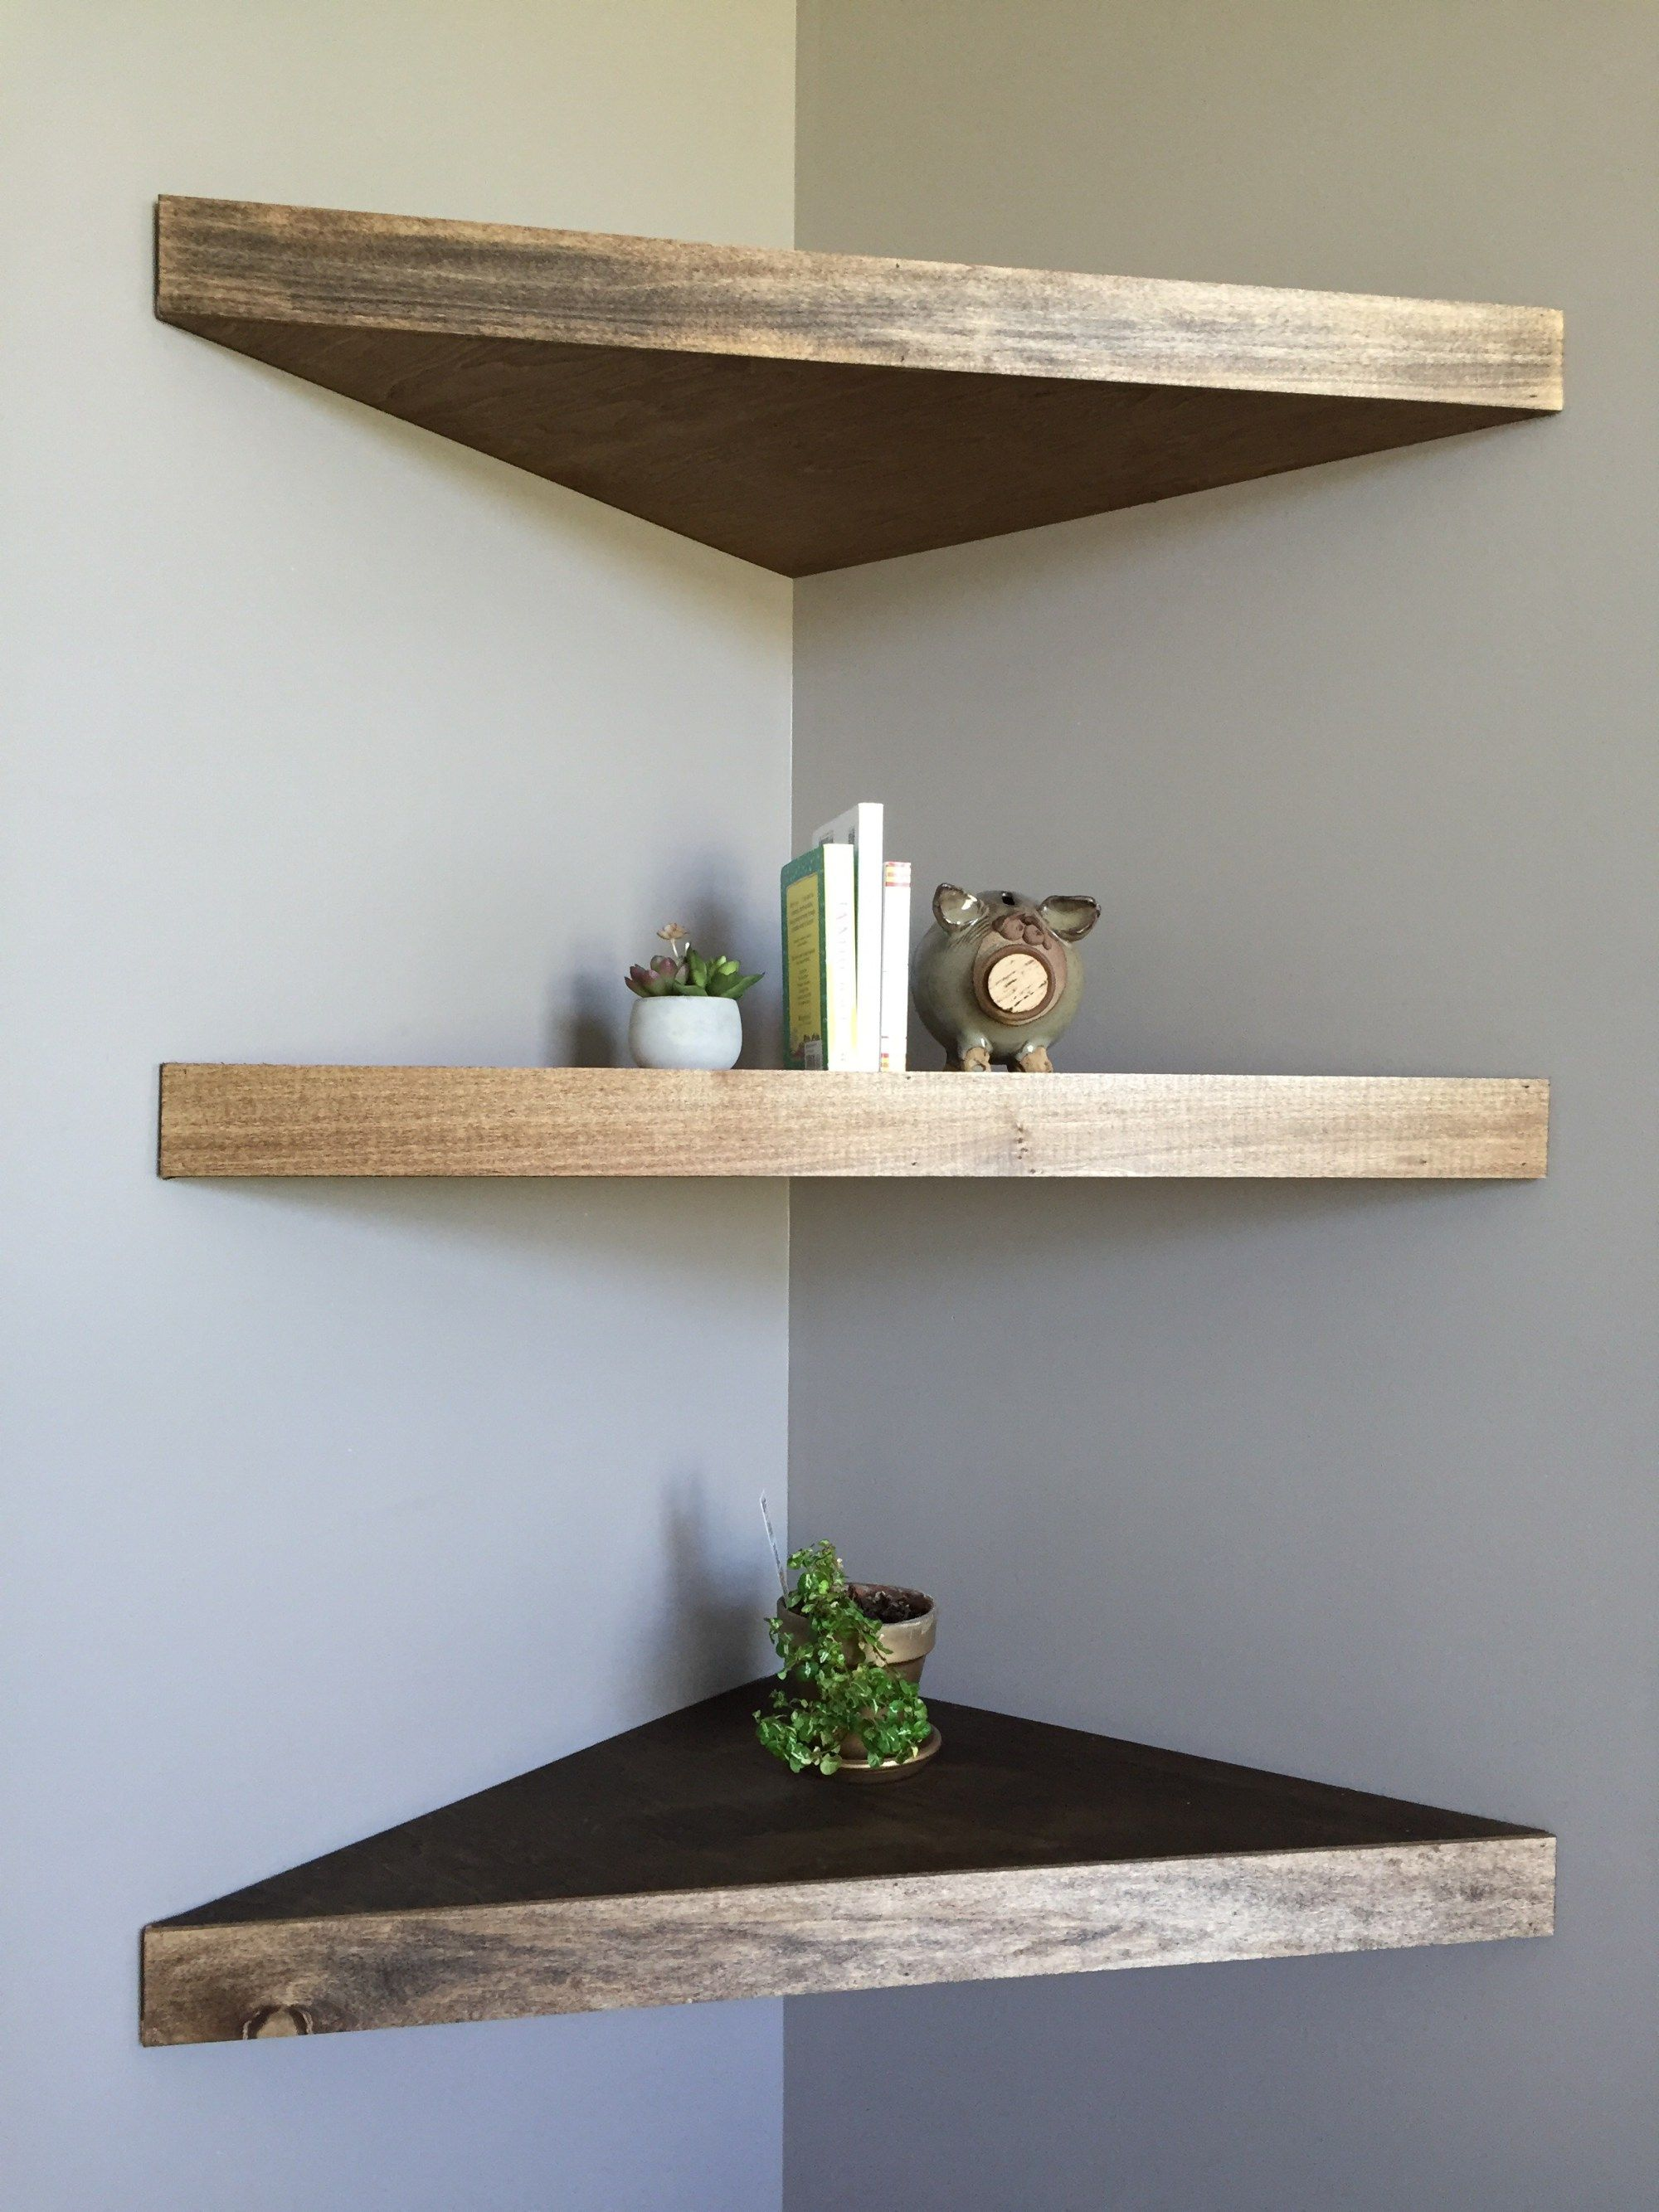 diy floating corner shelves for the home best books pine wood ikea black storage cupboards kmart carved wall art decor vintage industrial shelf brackets inch unit shelving